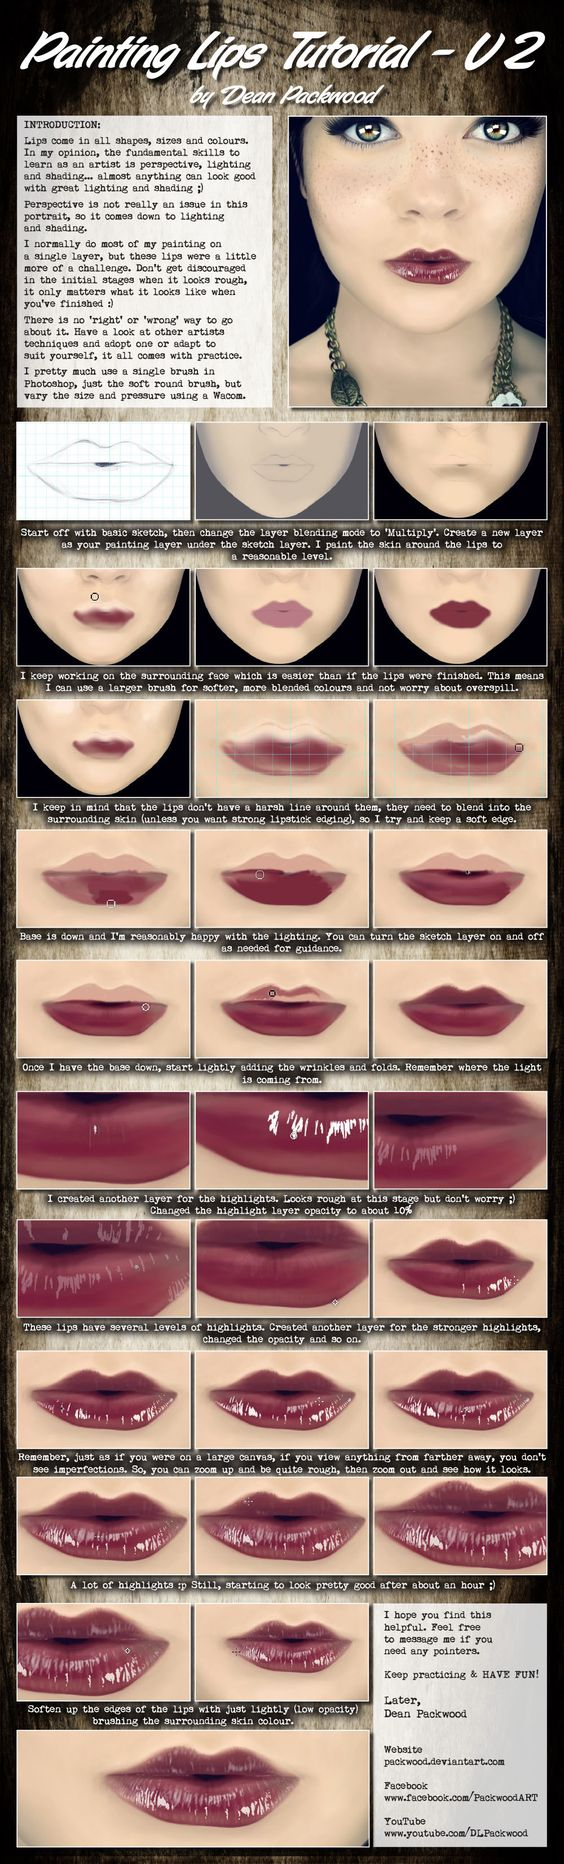 #drawing #Painting Lips Tutorial - V2 by Packwood.deviantart.com on @deviantART